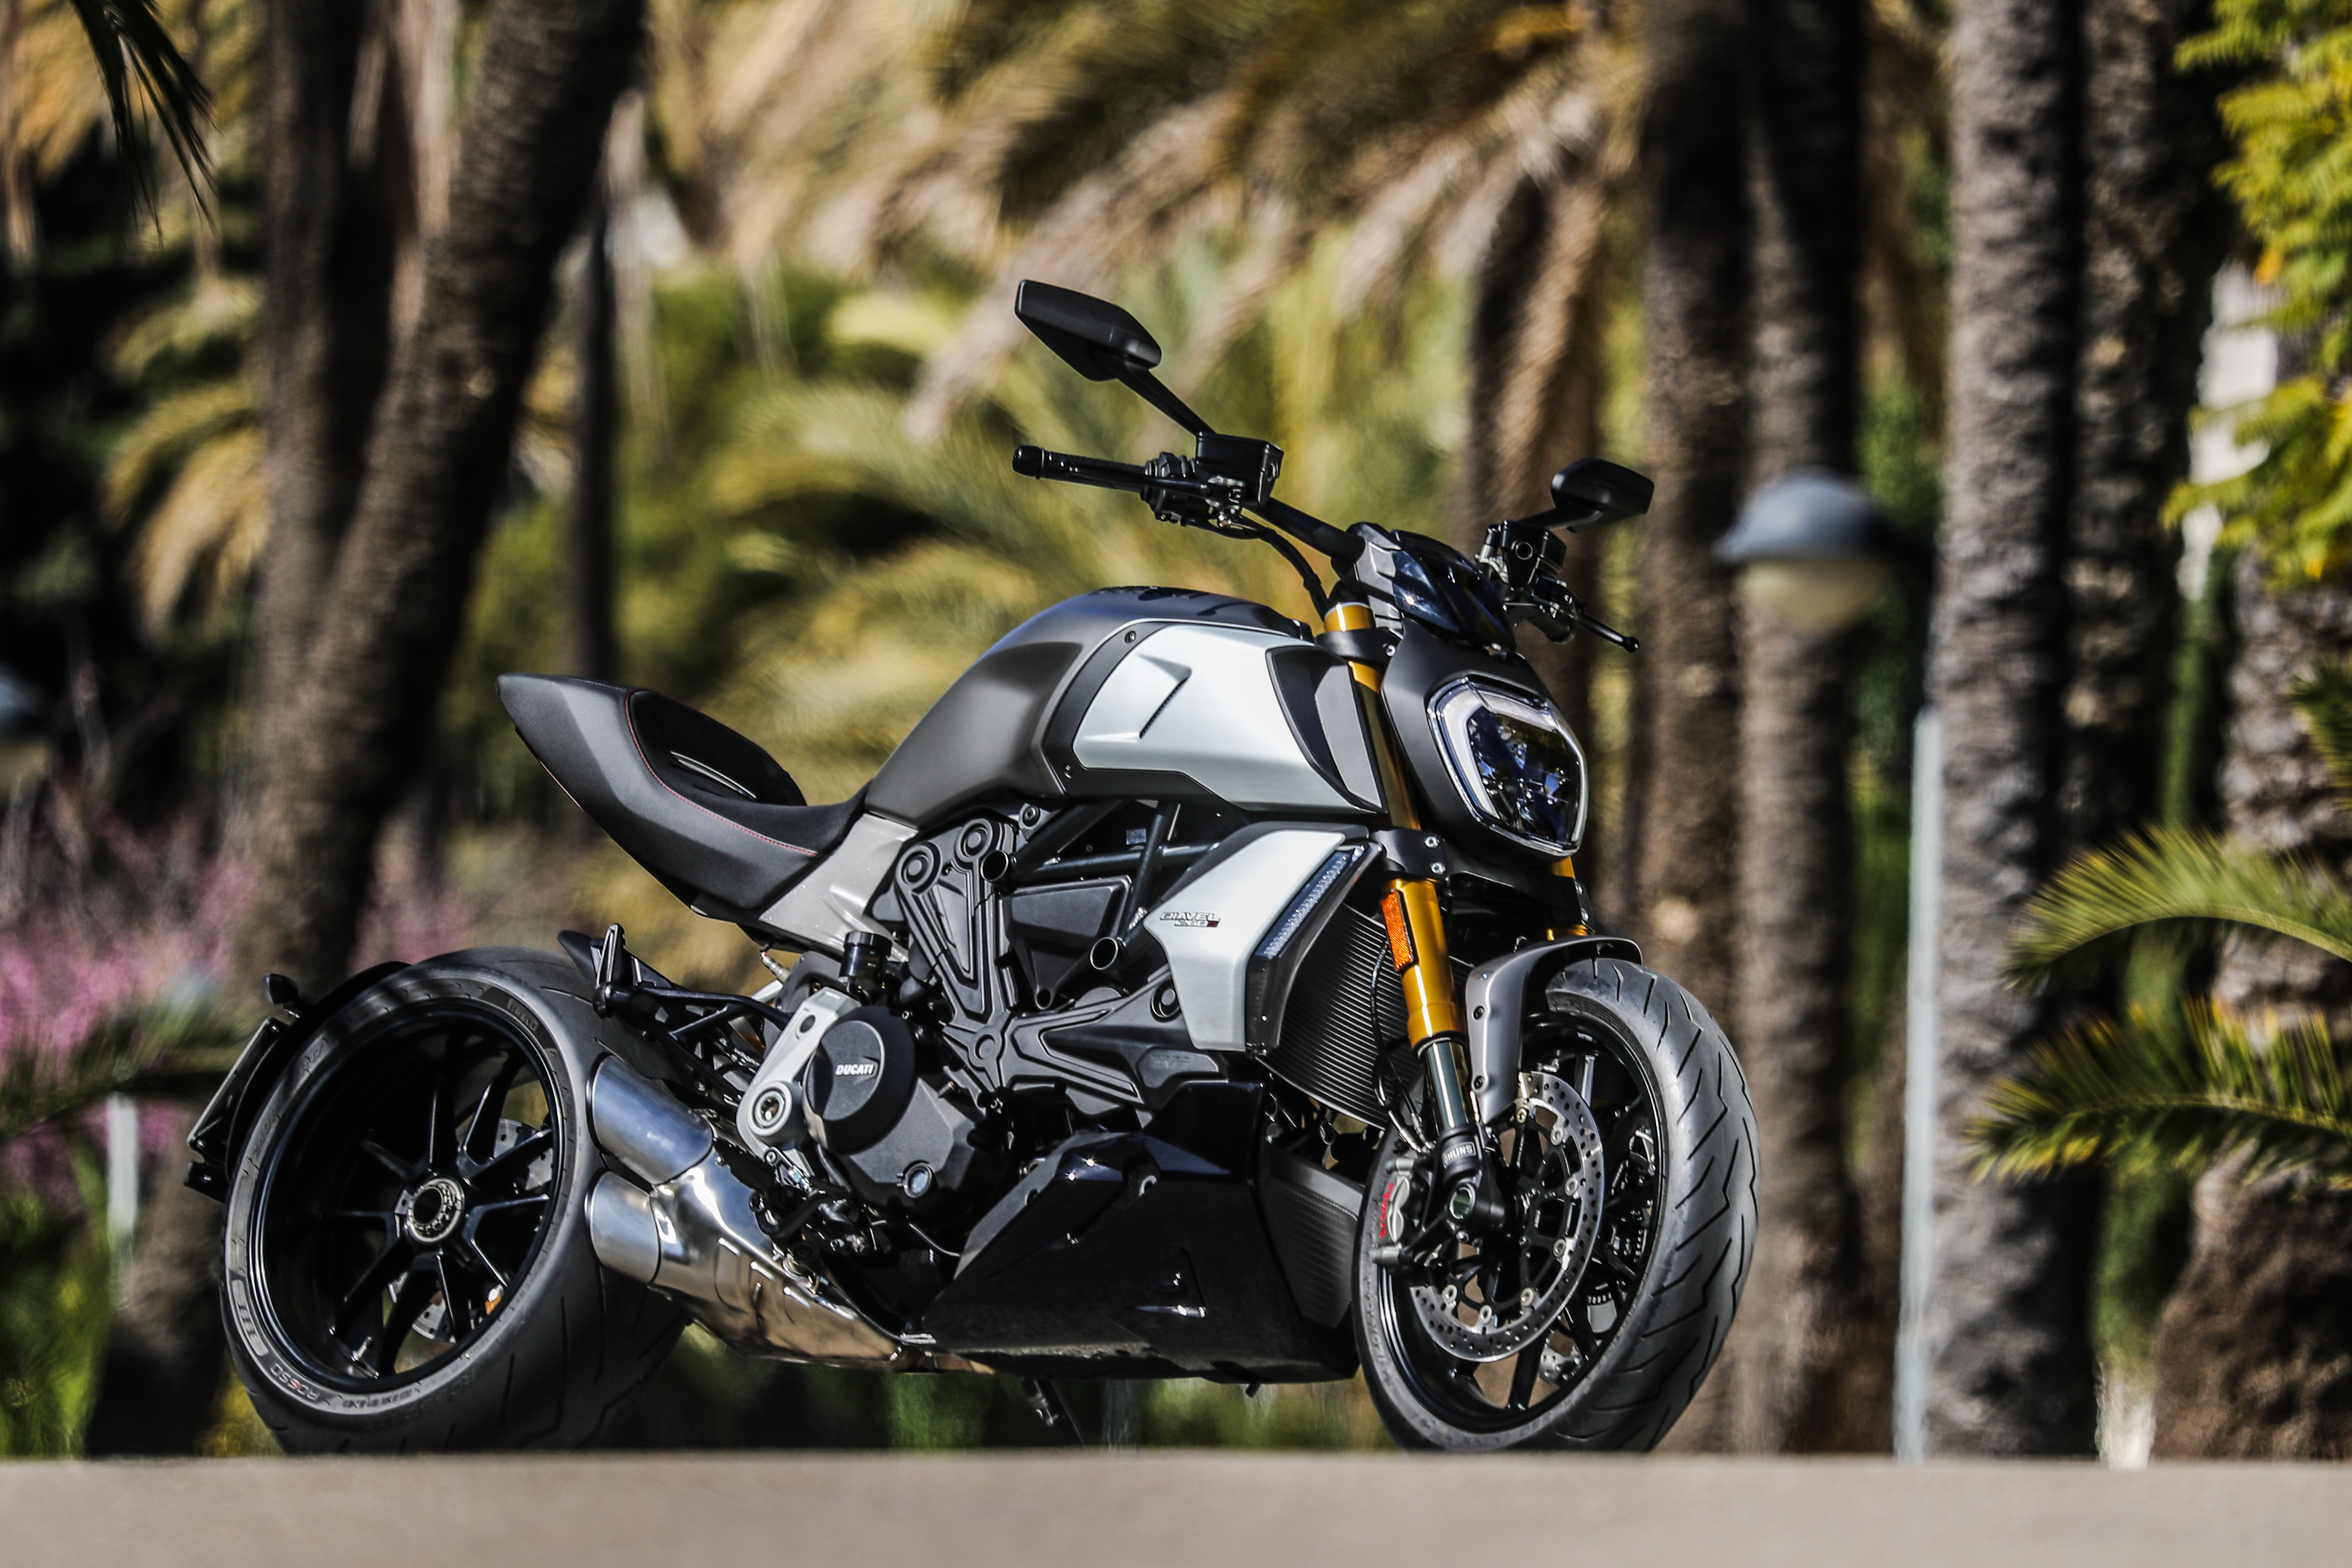 Ducati Diavel 1260S Review: A Muscle Bike Goes to Crossfit